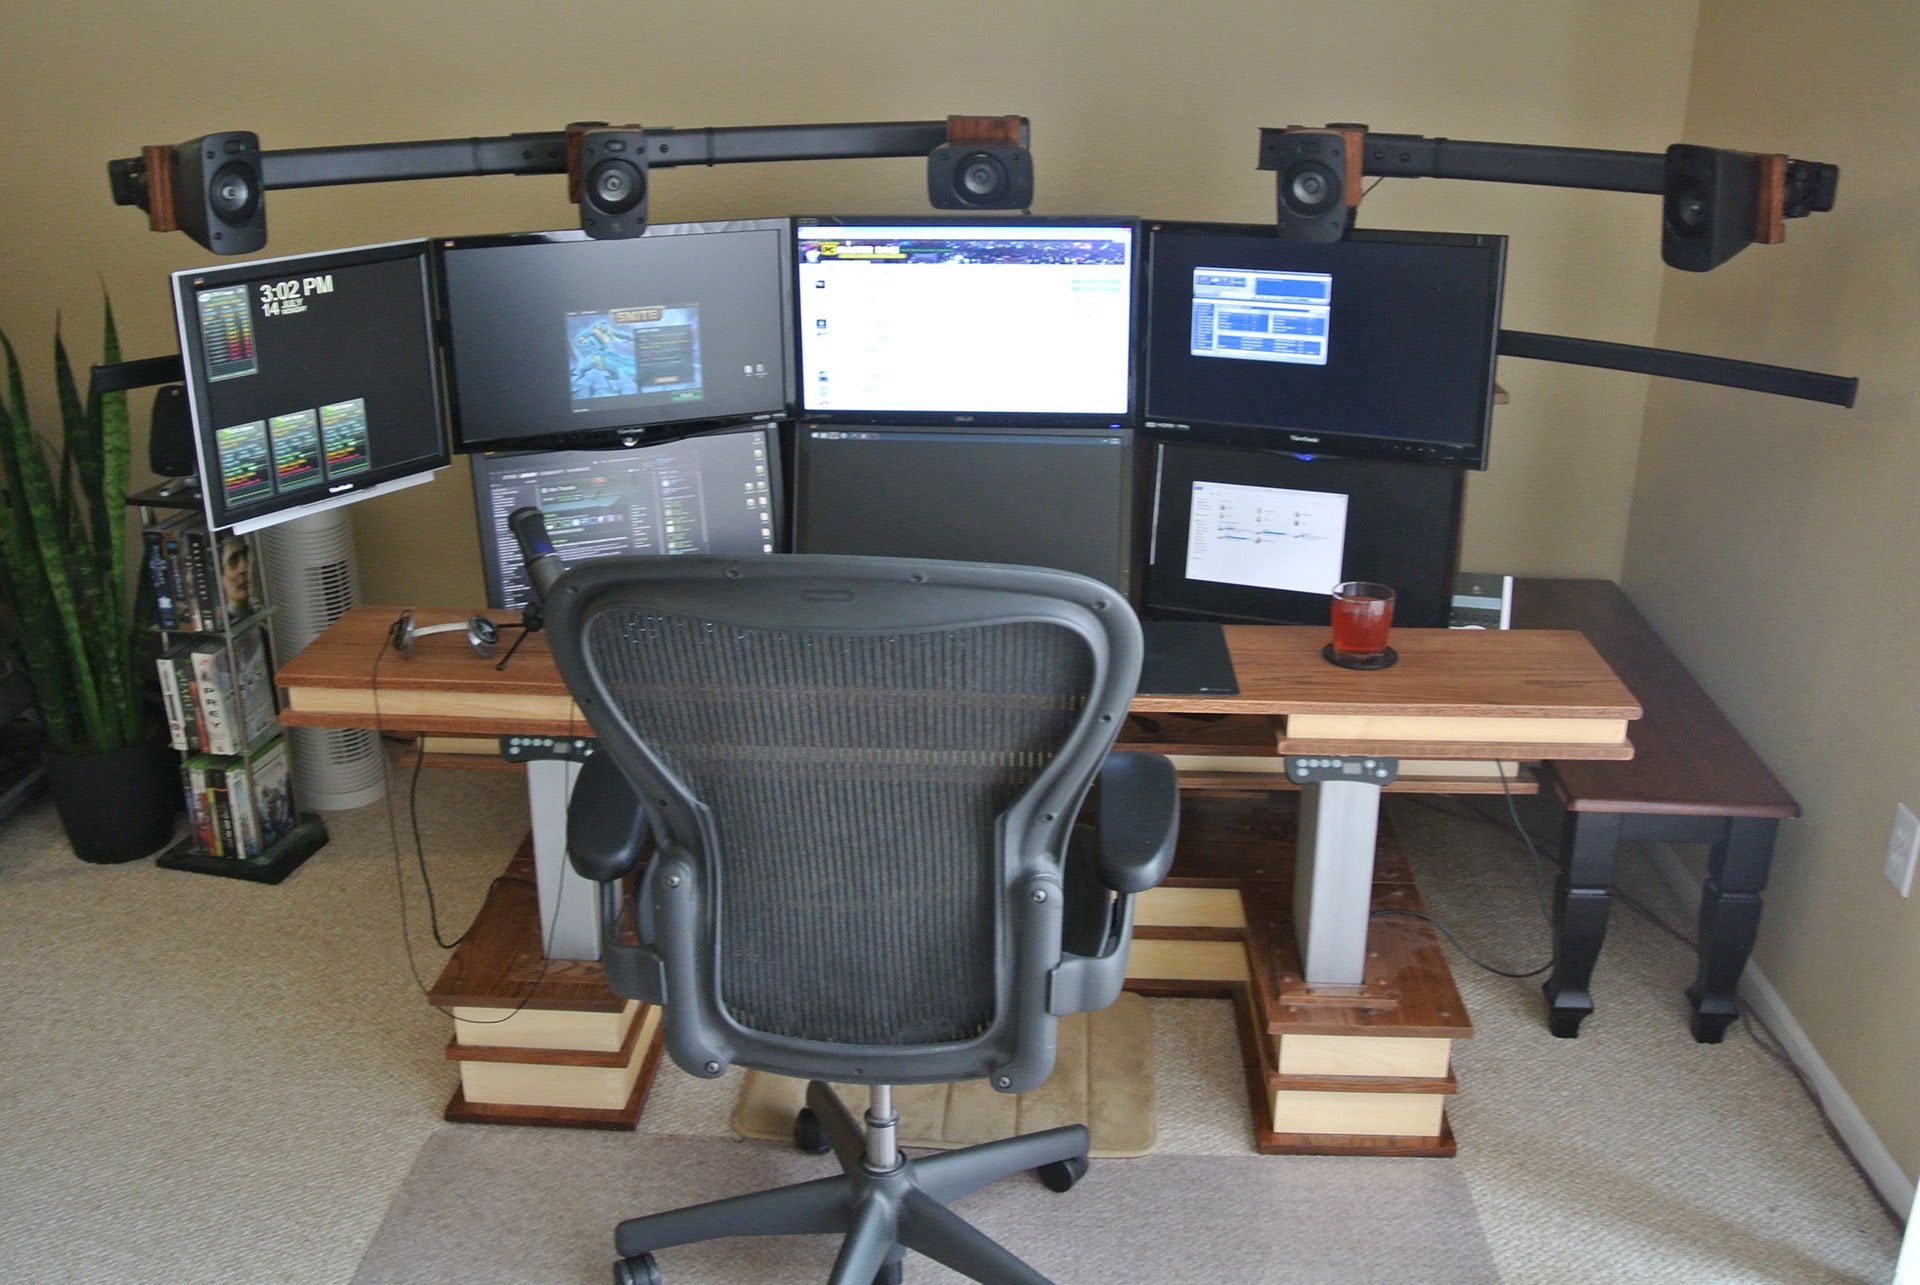 The Official Desk of 1337 Pwnage  The Official Site of